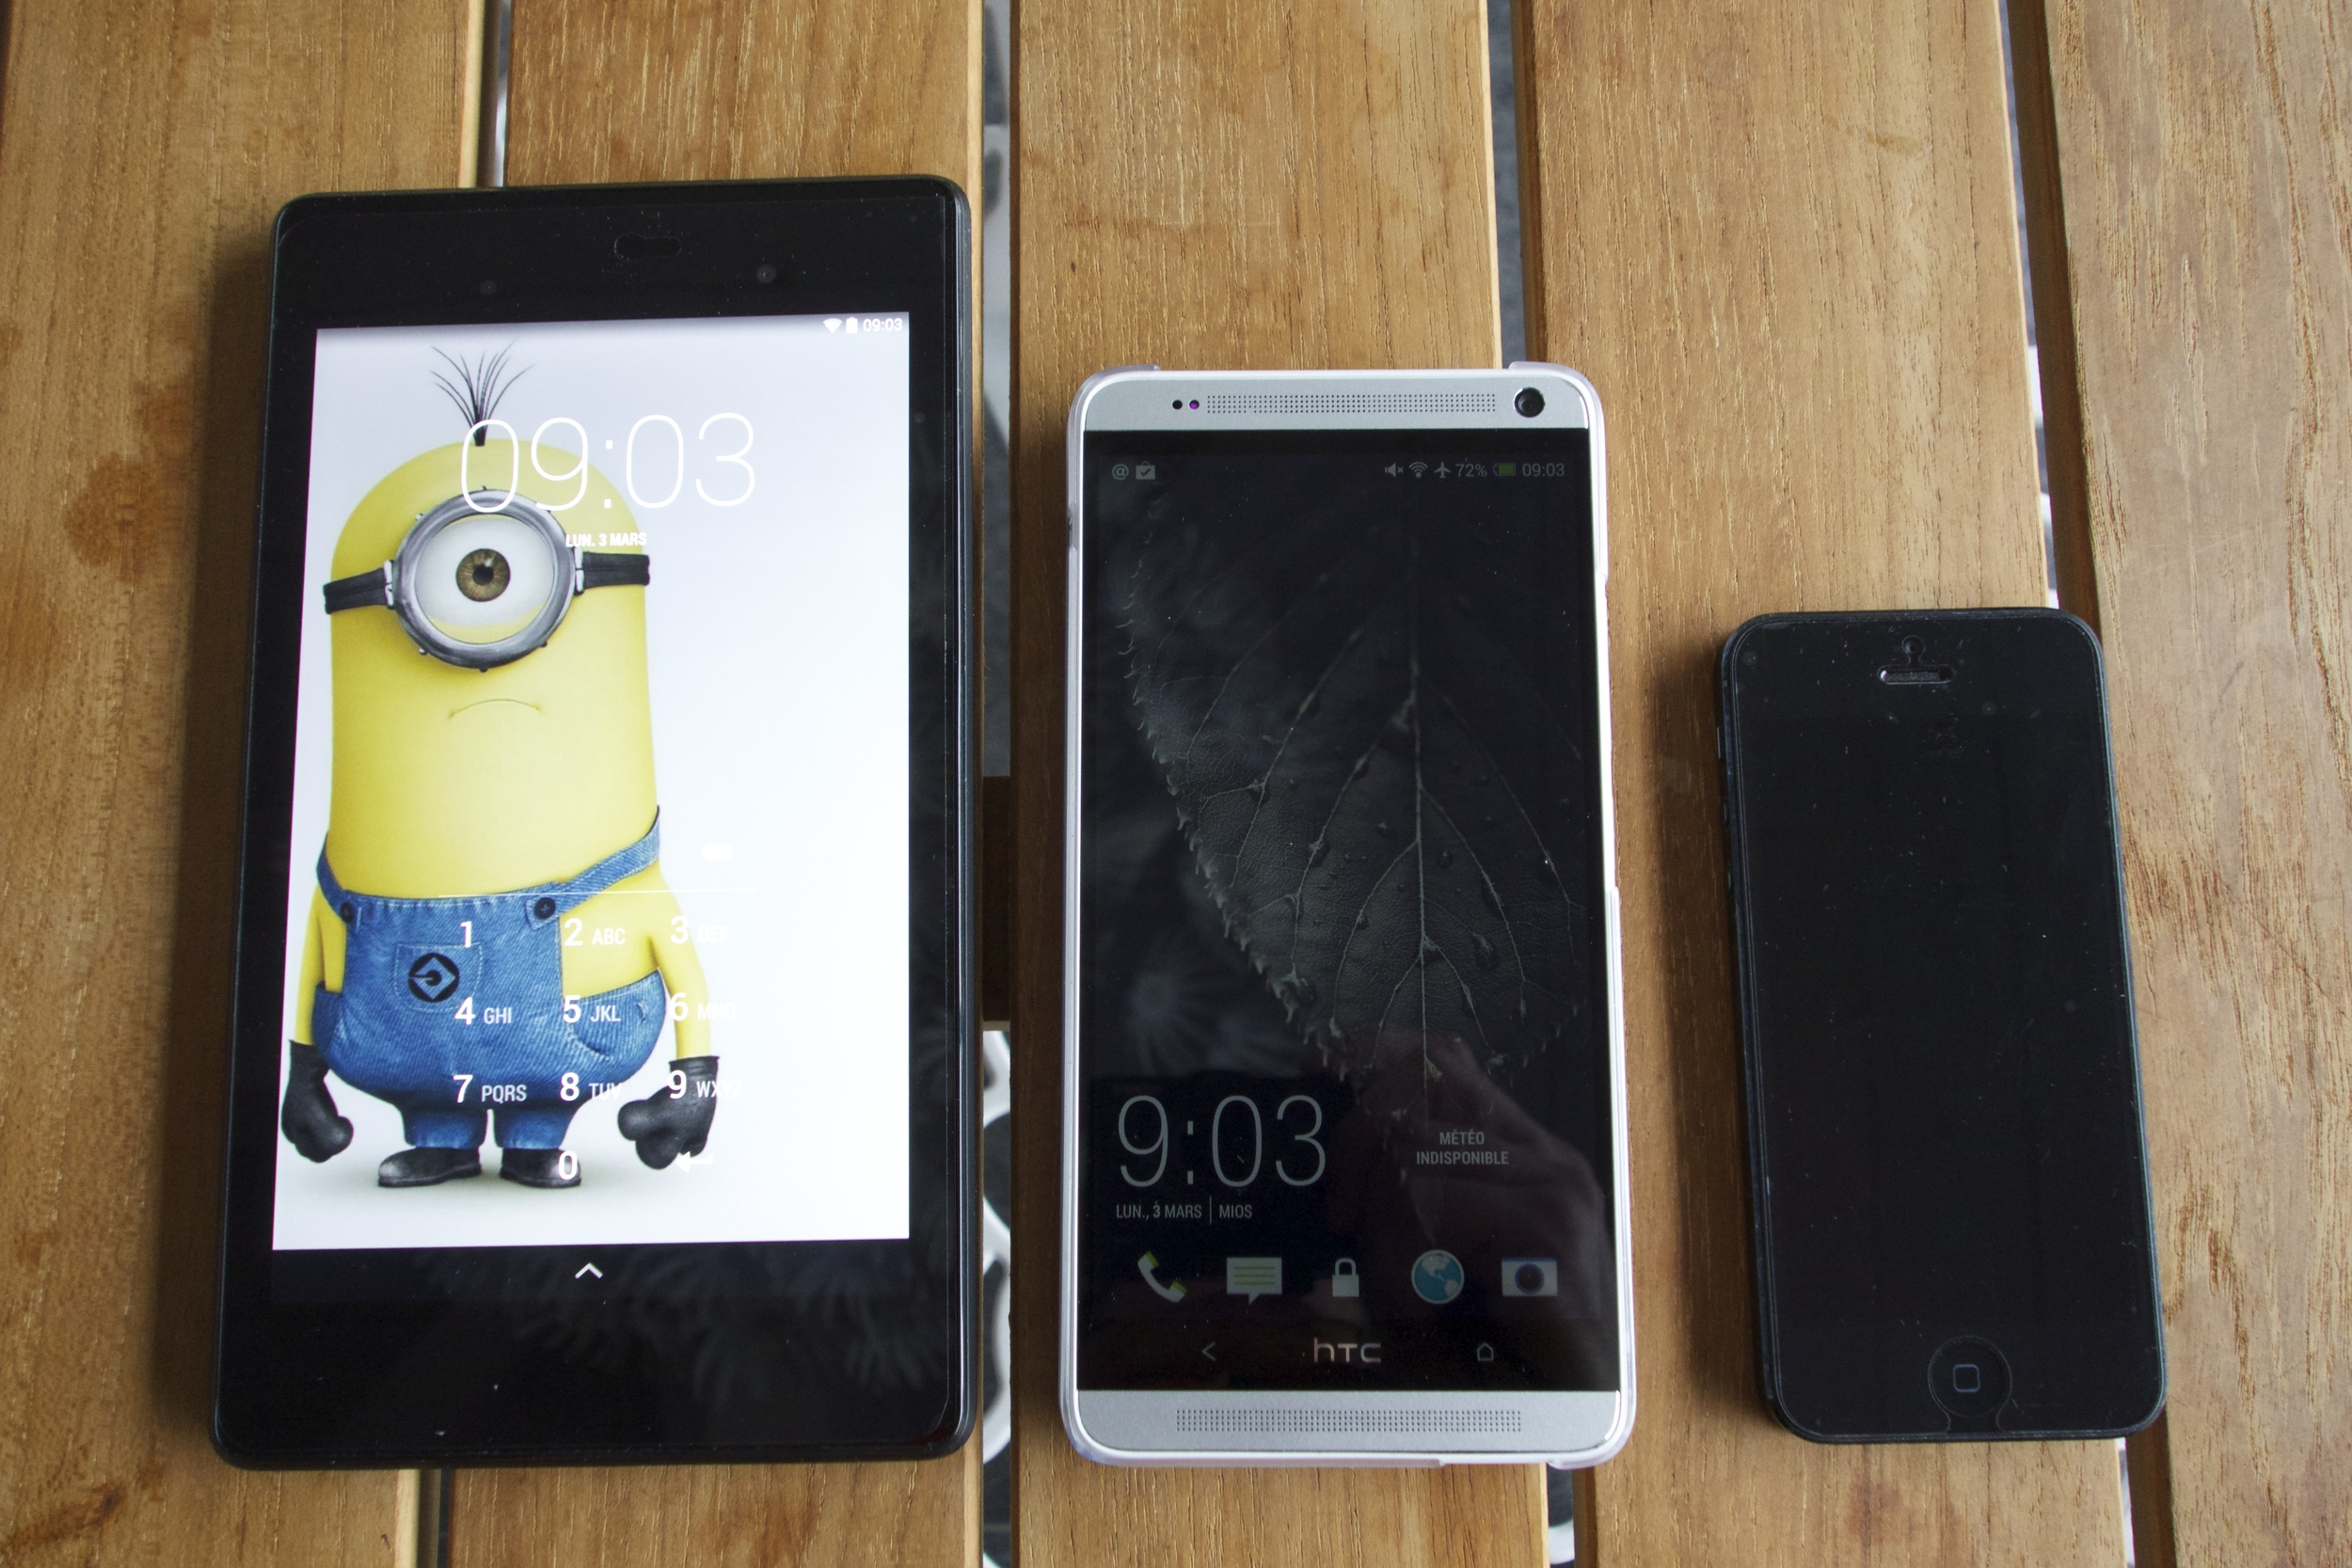 Nexus 7 2013 , HTC One Max , Mon iphone 5